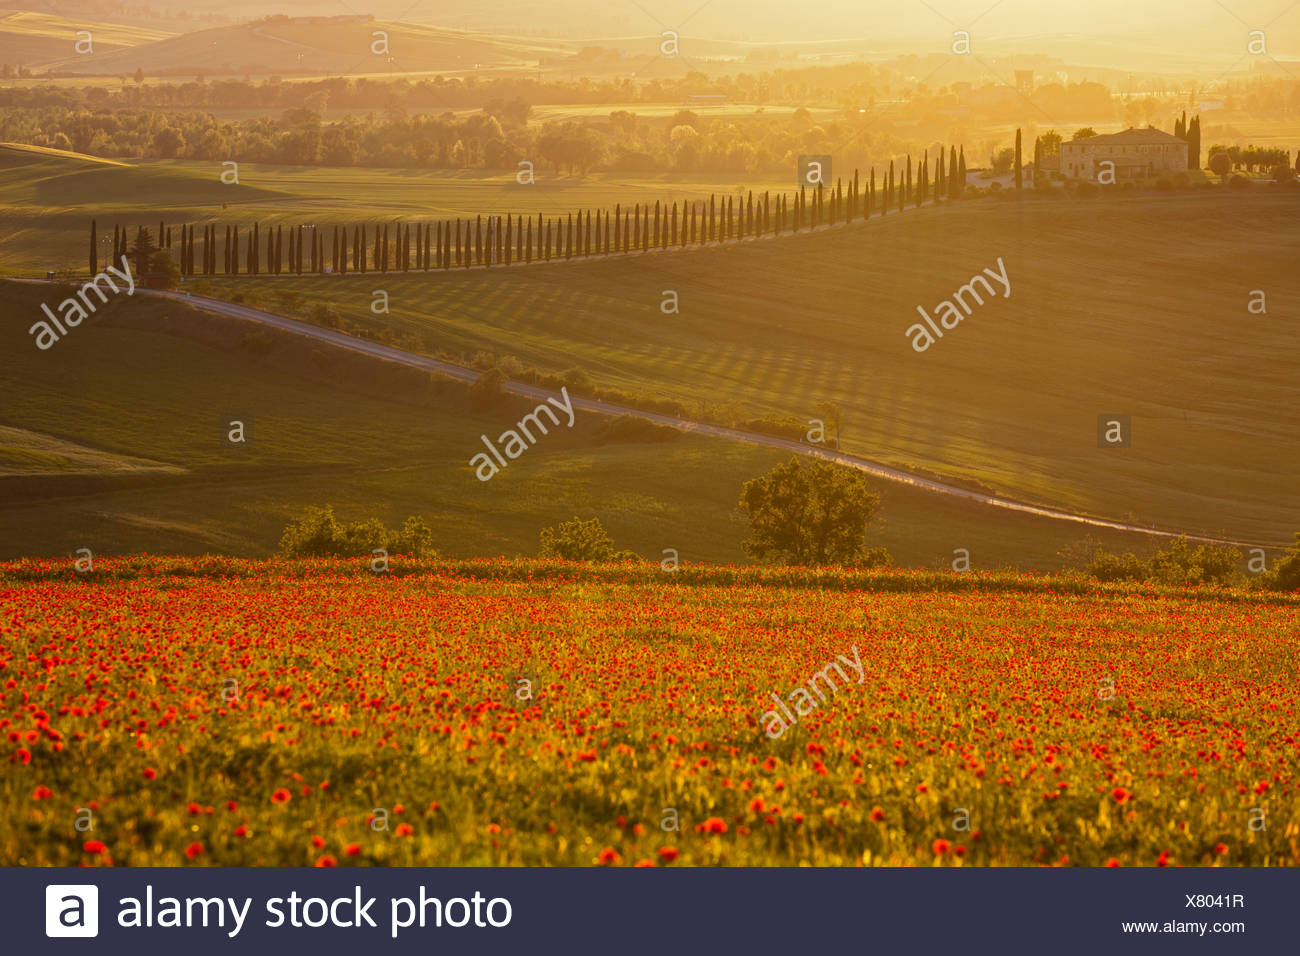 Italy, Tuscany, Crete, View of poppy field in front of farm with cypress trees at sunrise - Stock Image